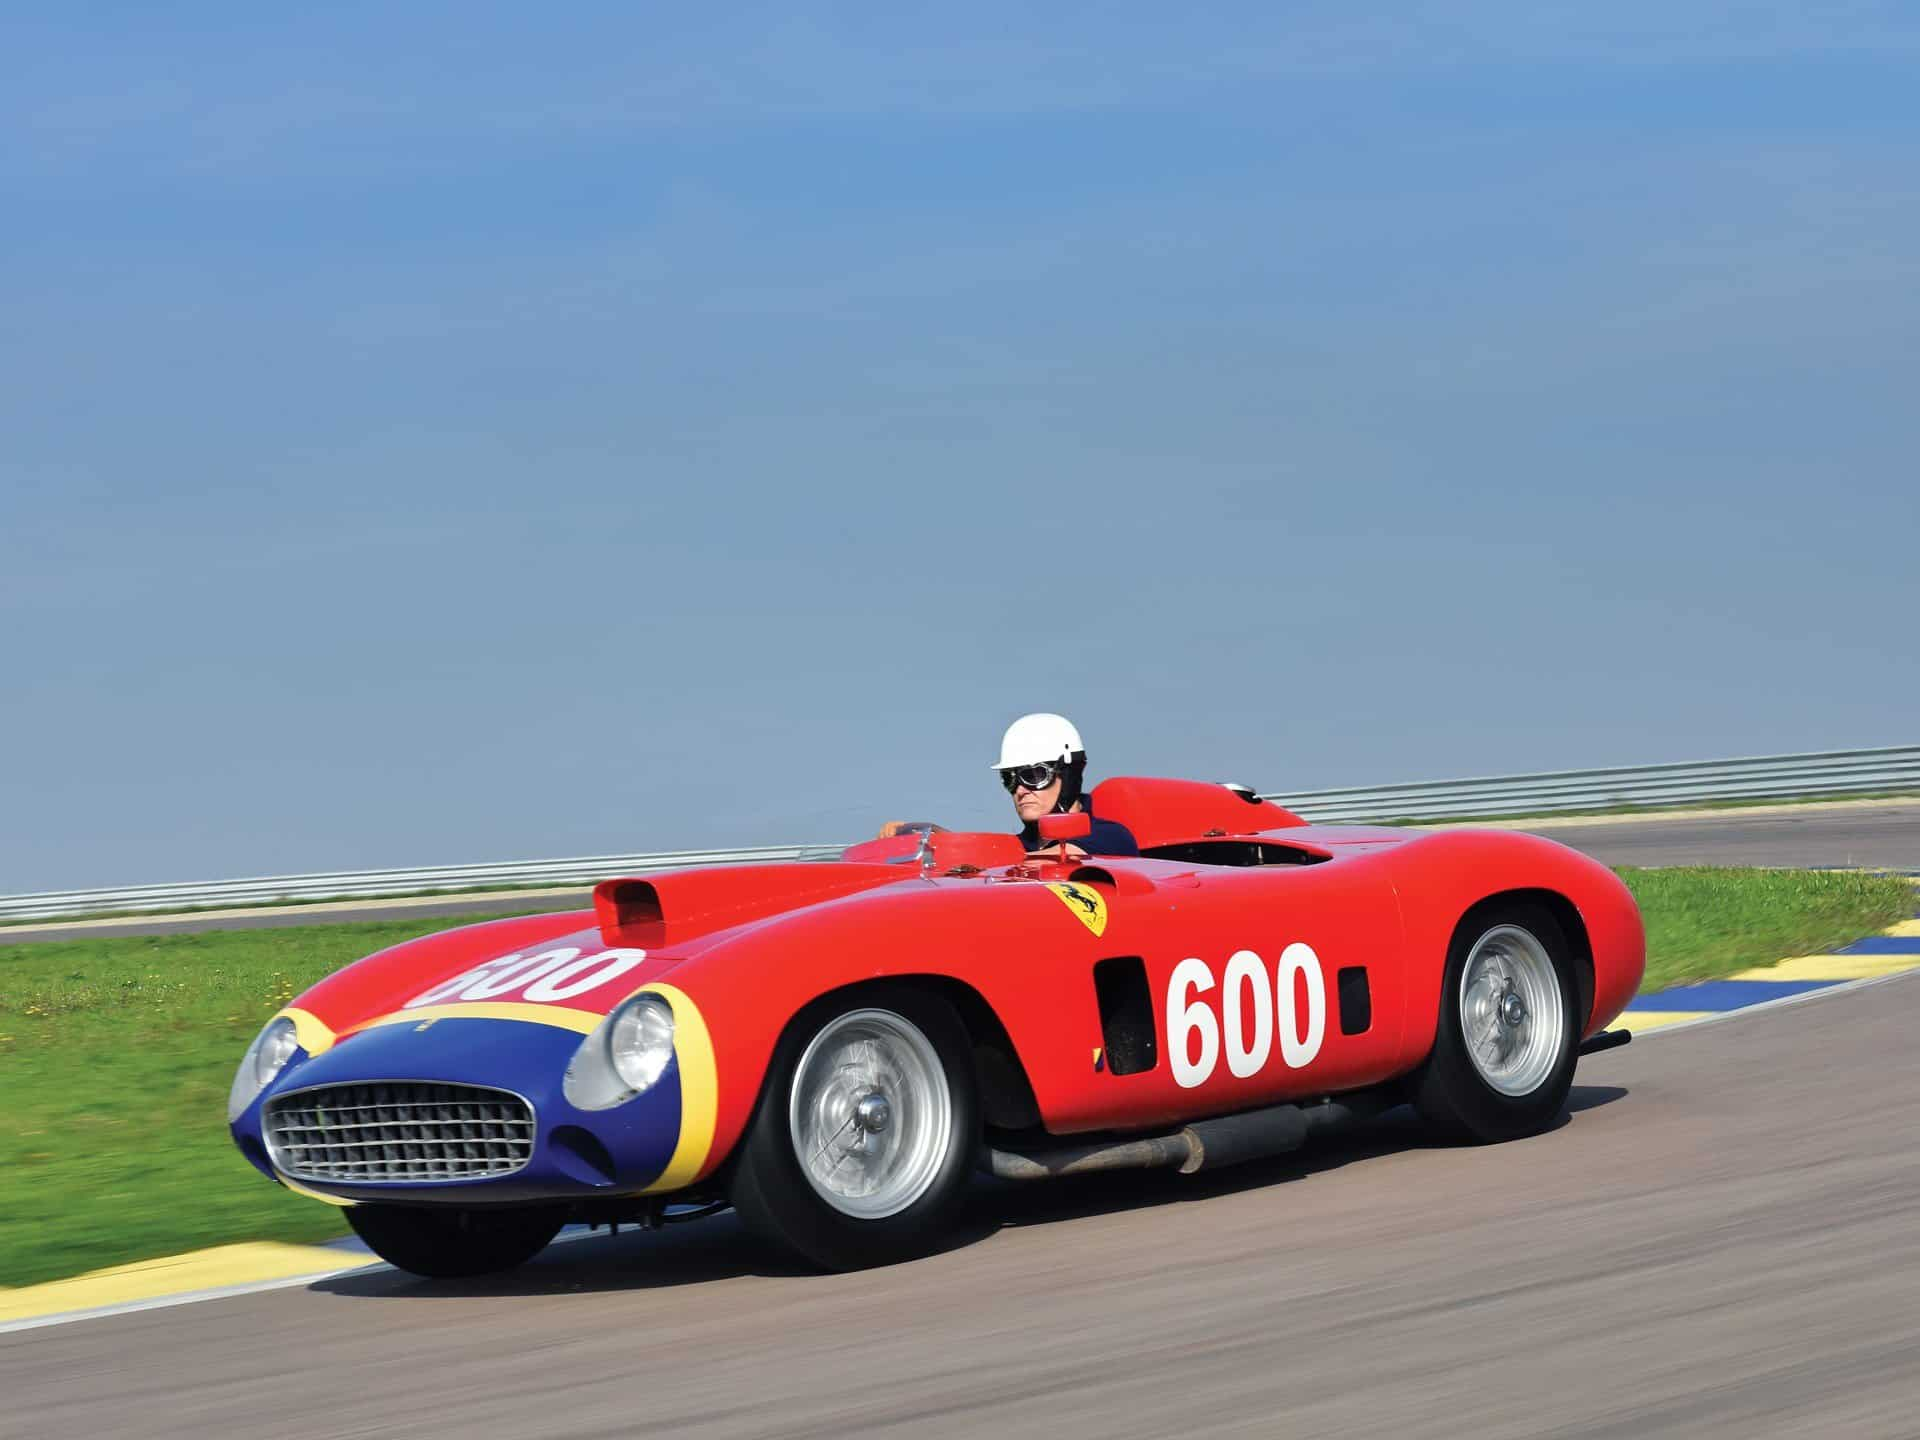 Ferrari 1956 - One of the most expensive cars ever sold